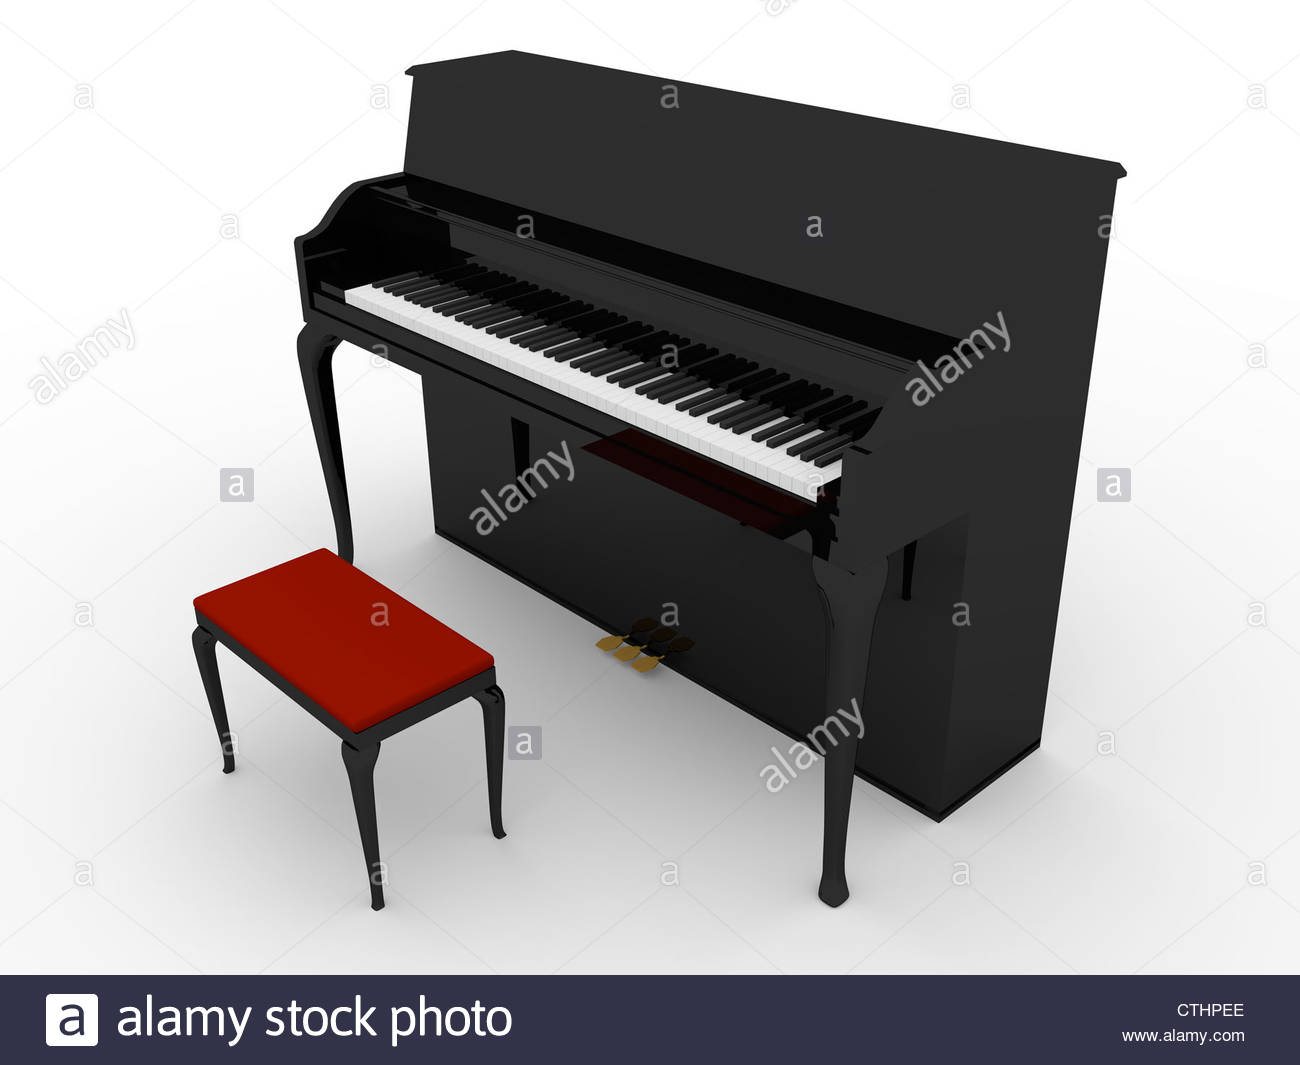 3d Render Of A Piano In Black With A Chair In Red